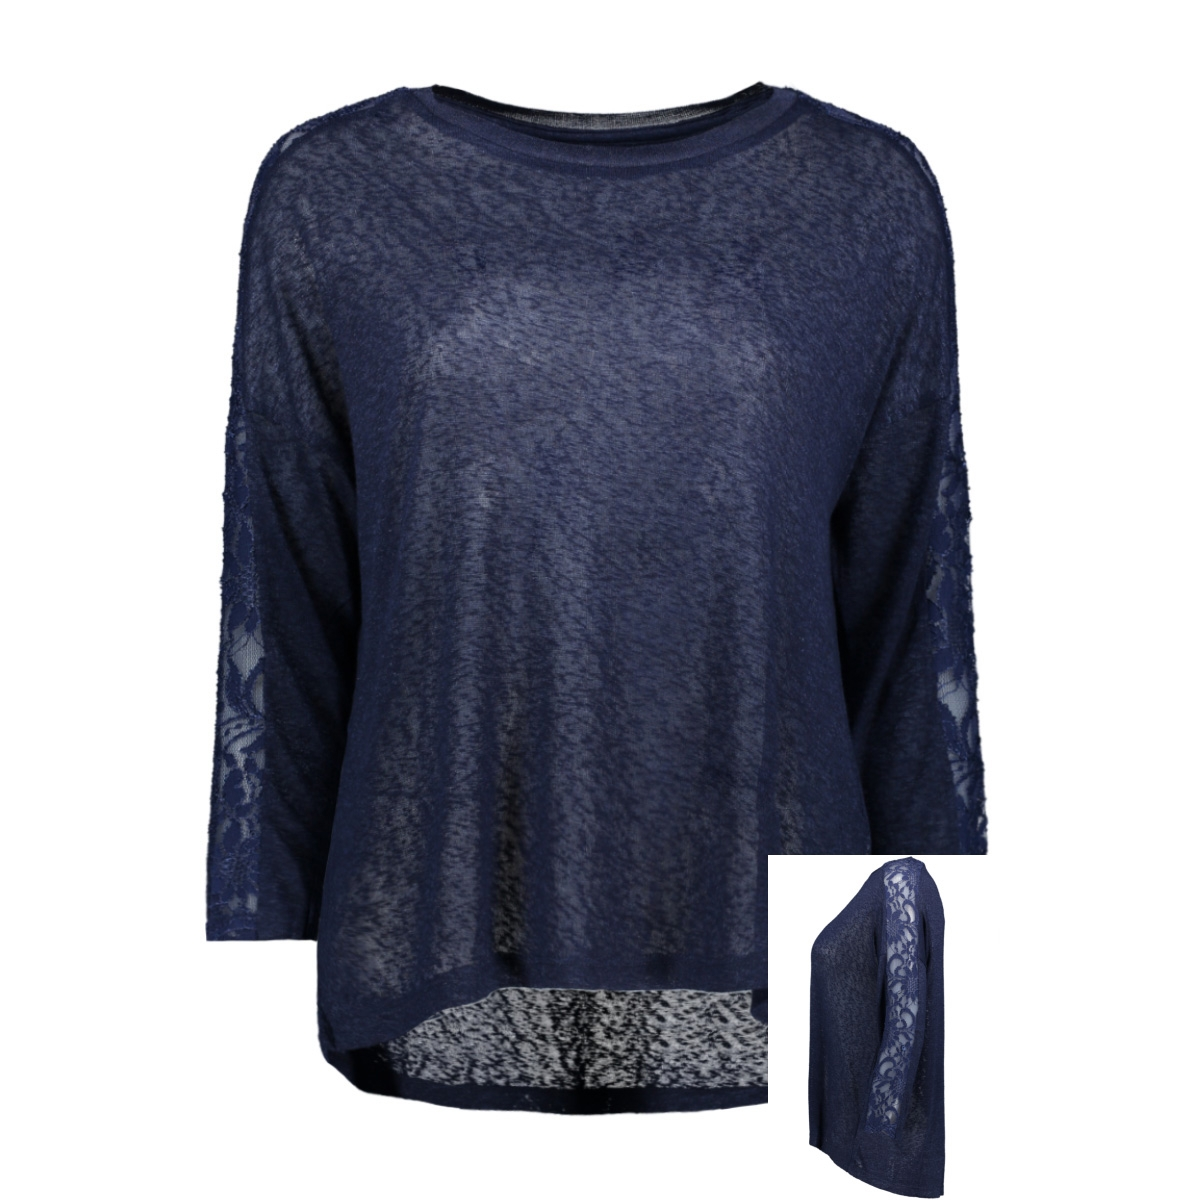 onlrie 3/4 lace top jrs 15189621 only t-shirt peacoat